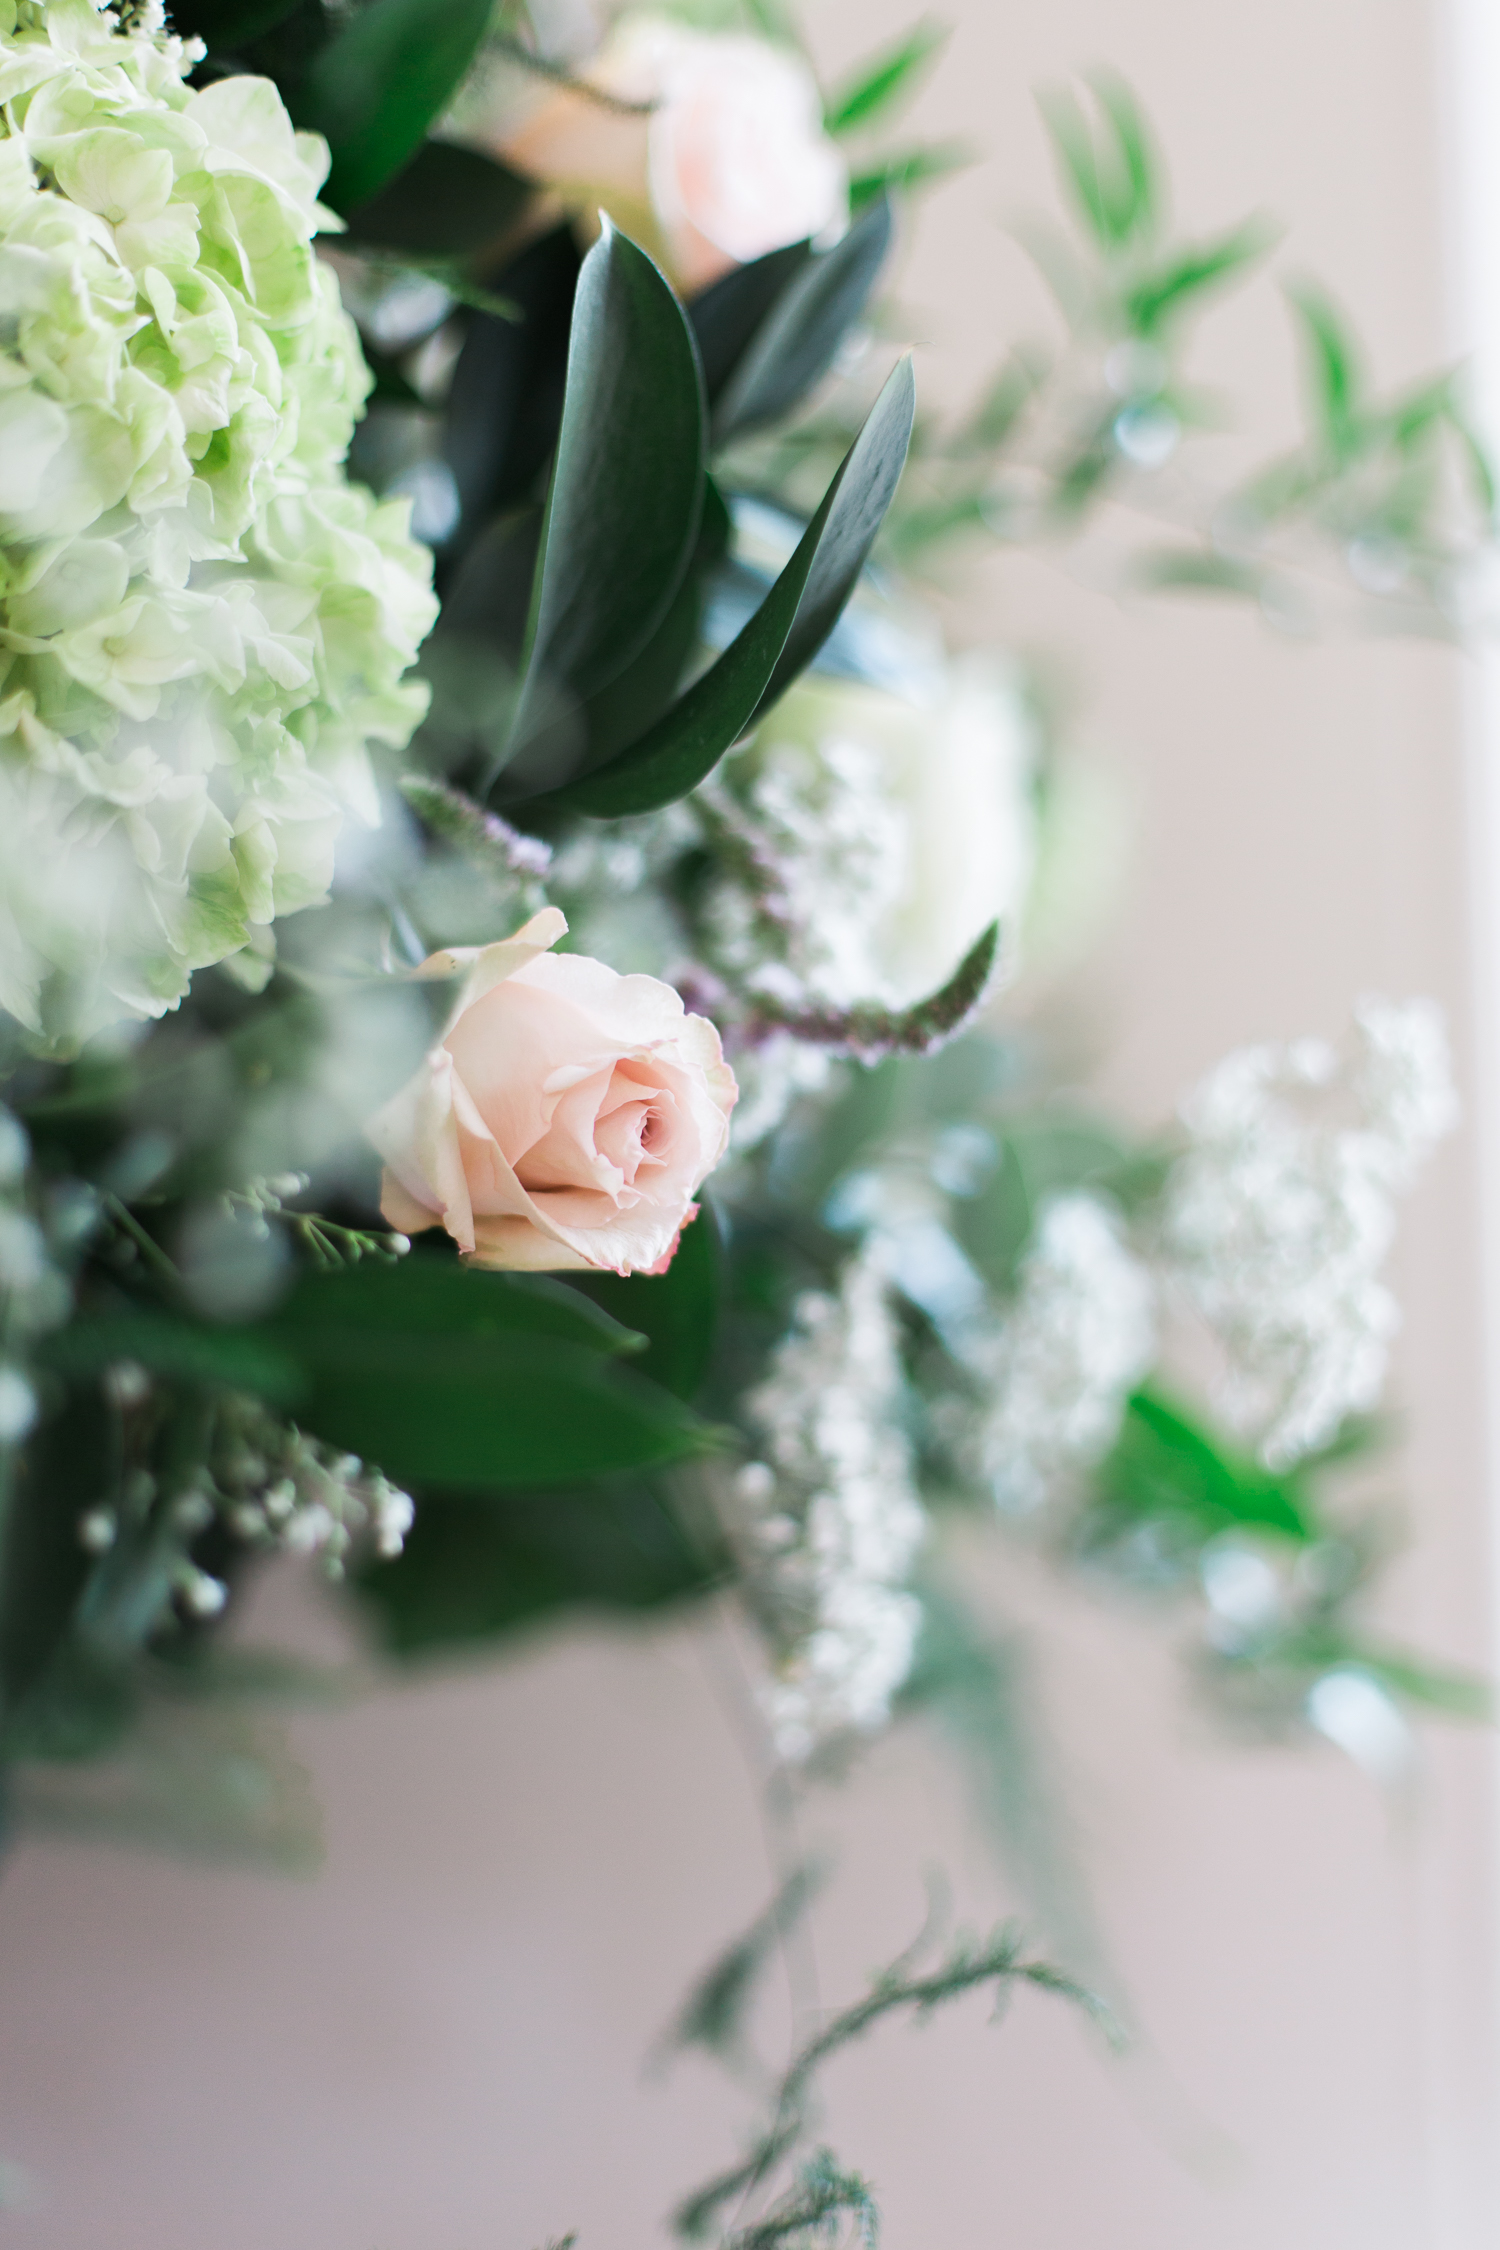 Flowers by Selina Godsal at an Iscoyd Park wedding